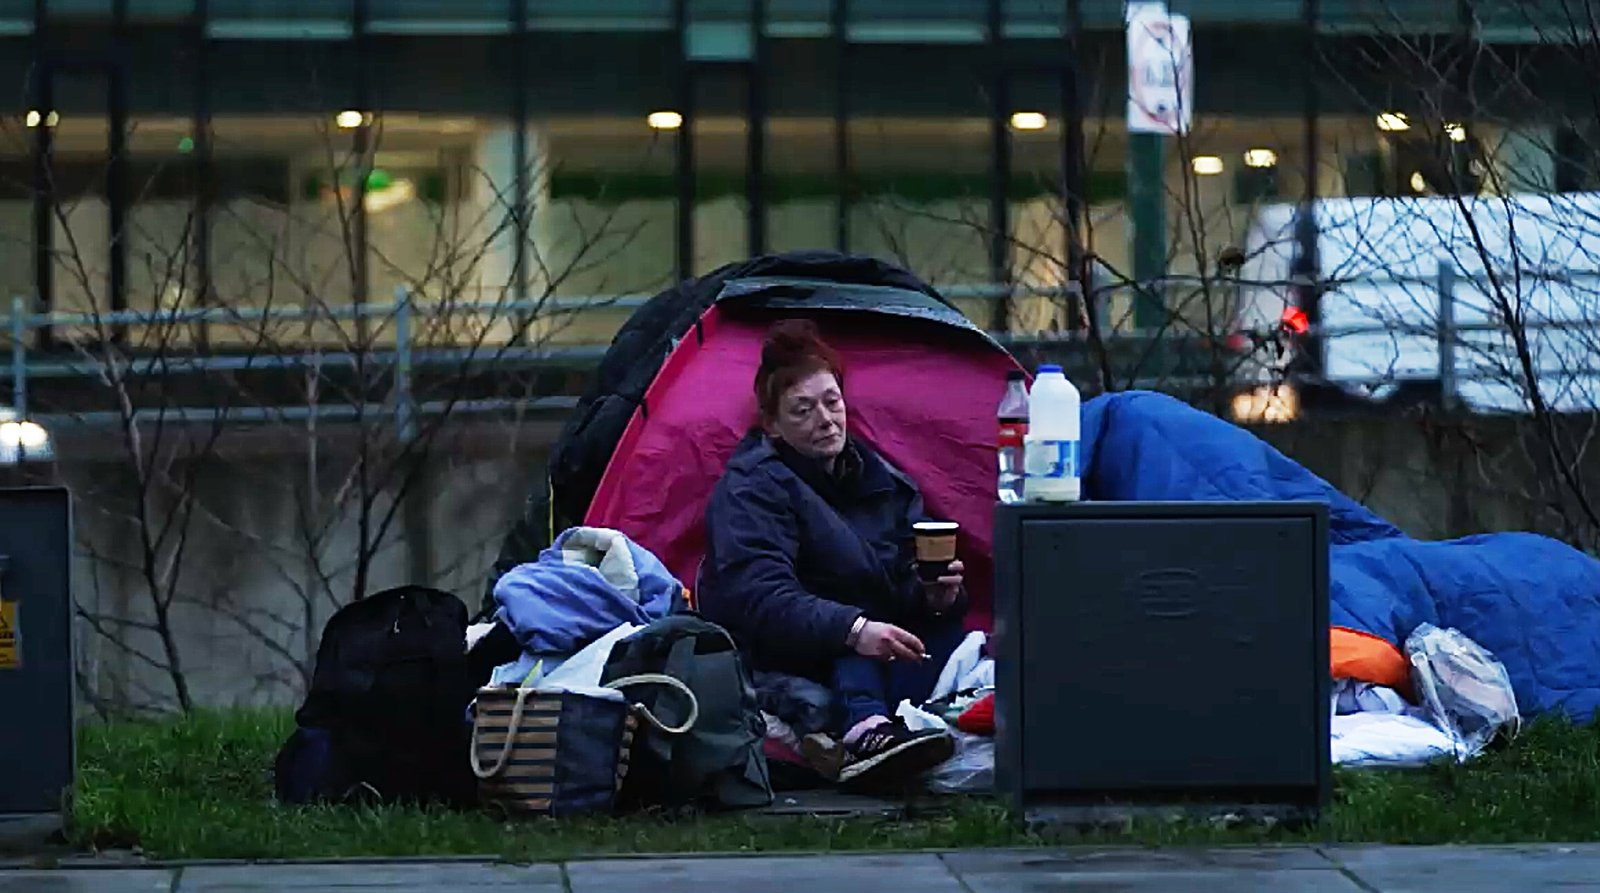 Image - 39-year-old Natalie has been living in a tent beside Dublin's Grand Canal for the last few months